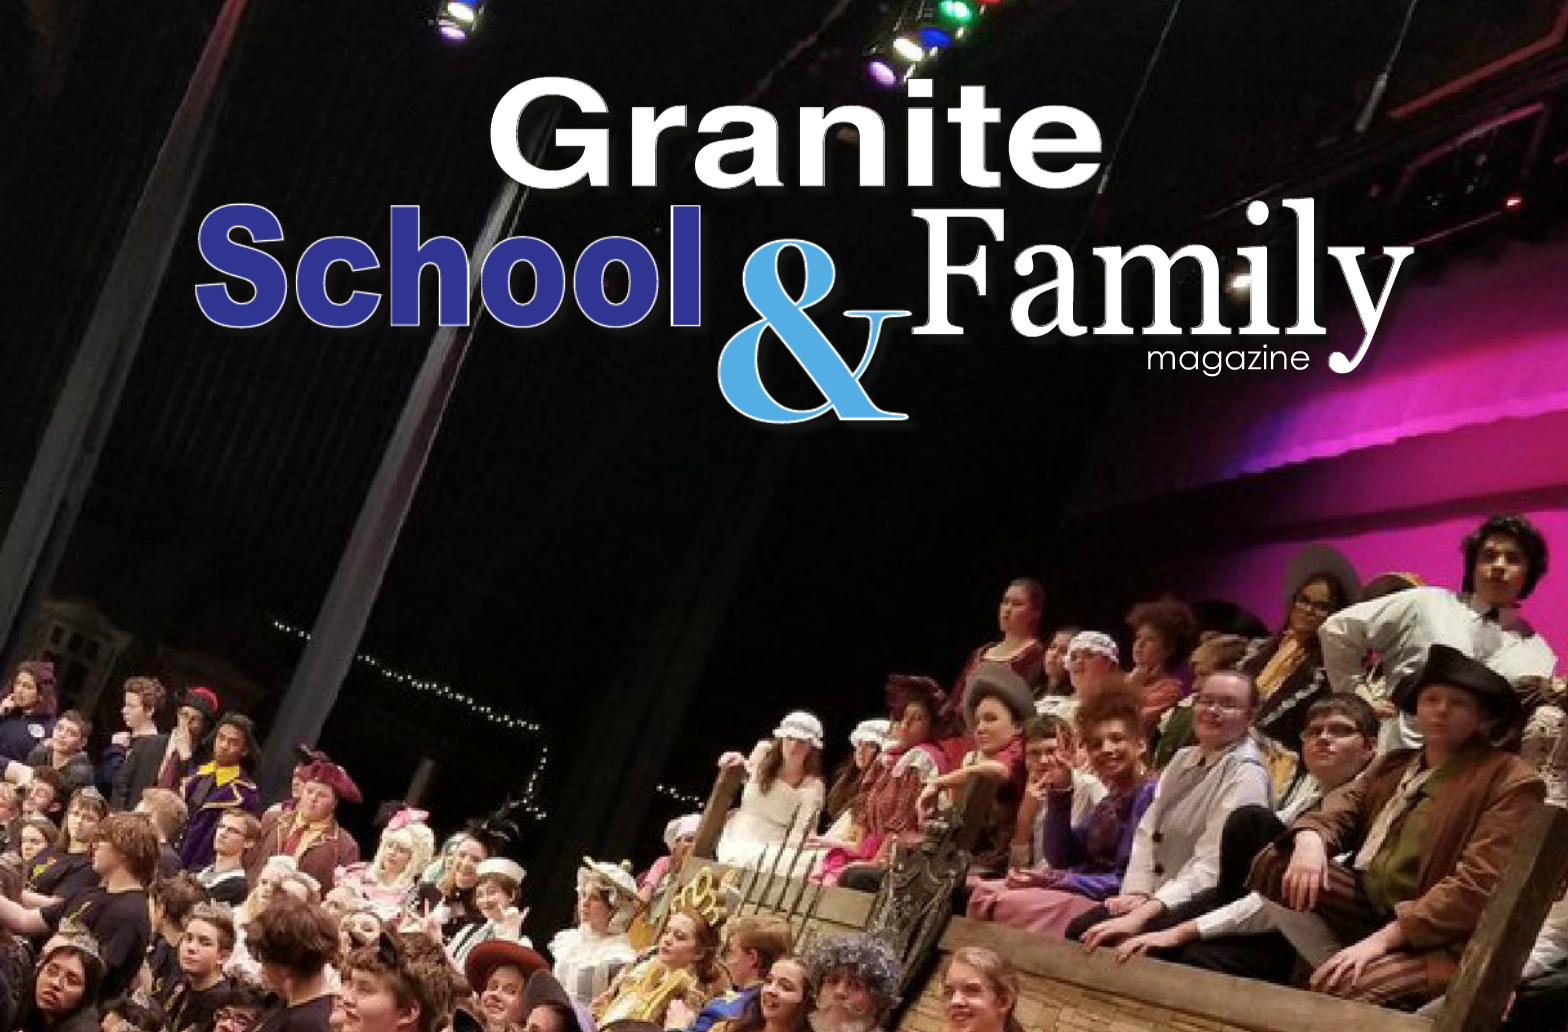 Cottonwood High musical cast members with text 'Granite School & Family Magazine'